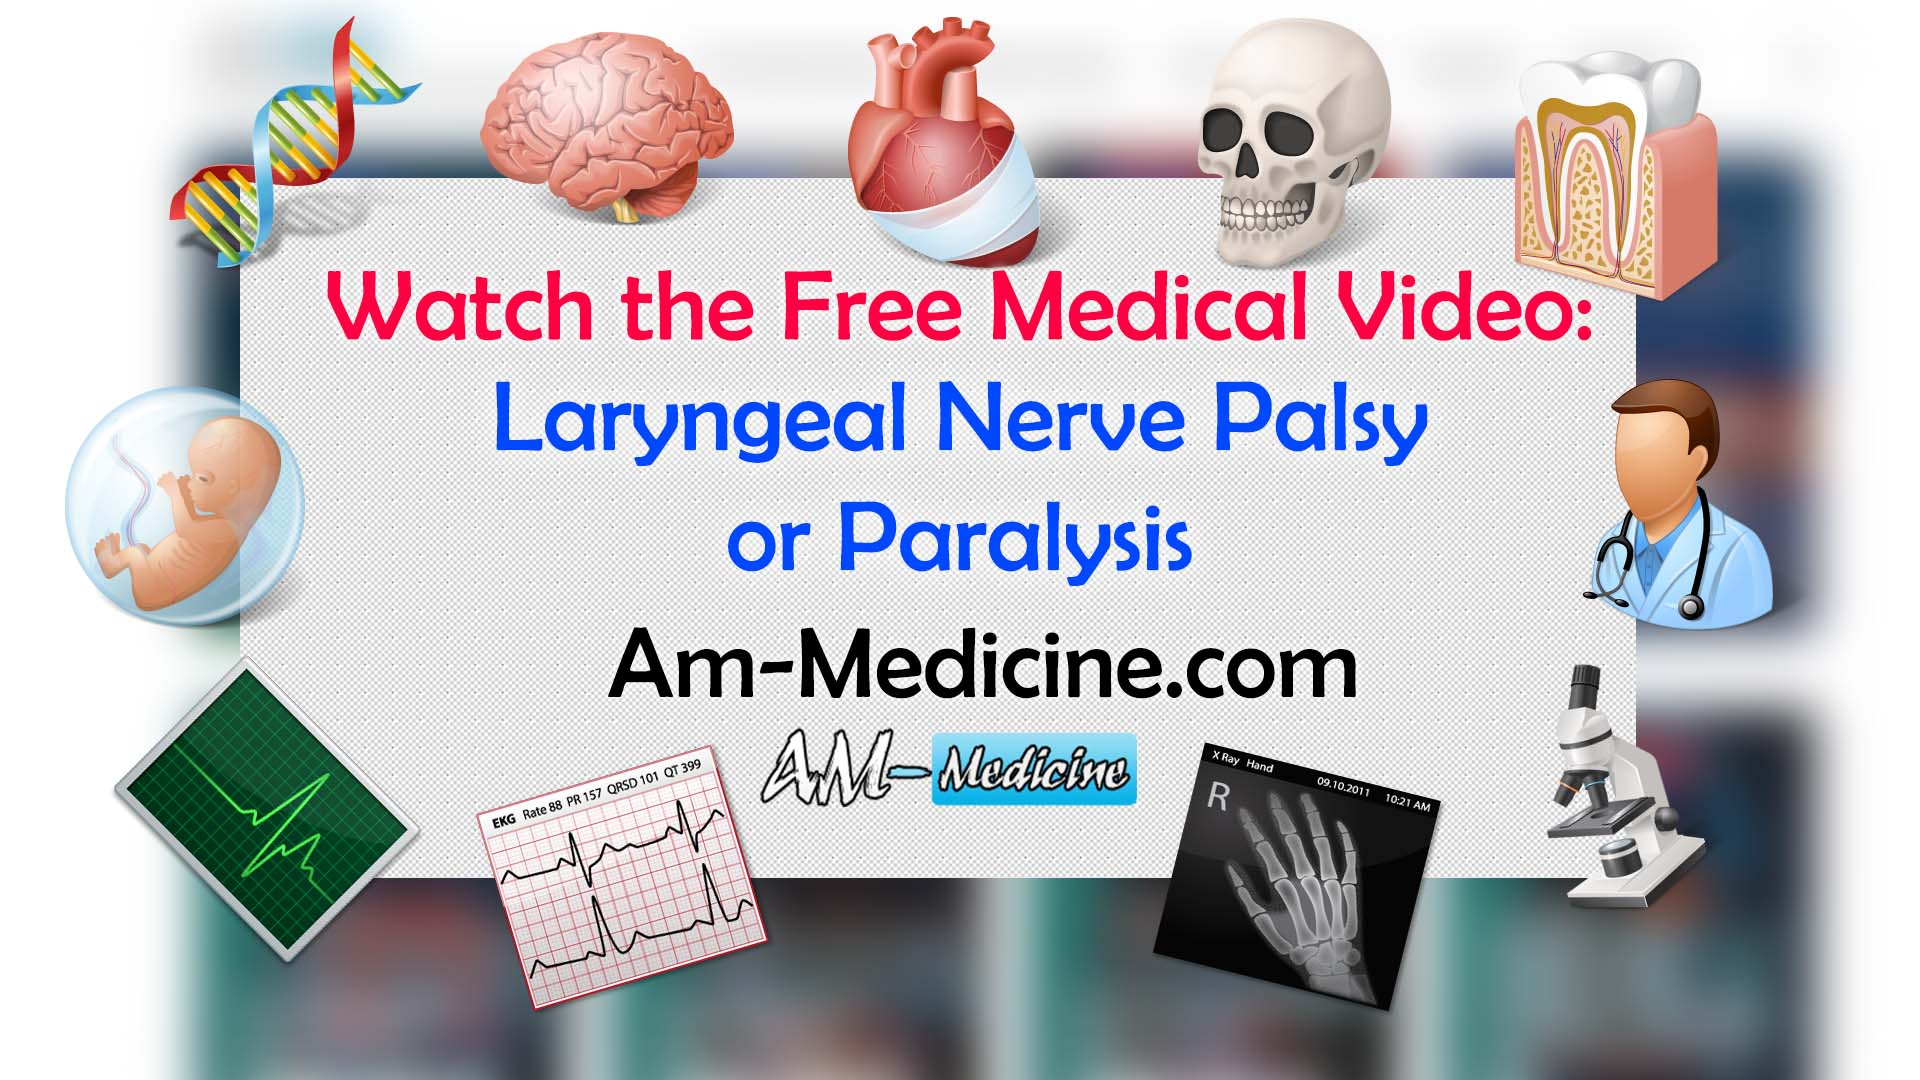 https://pickpdfs.com/laryngeal-nerve-palsy-or-paralysis-anatomy-physiology-classification-causes-pathophysiology-video/